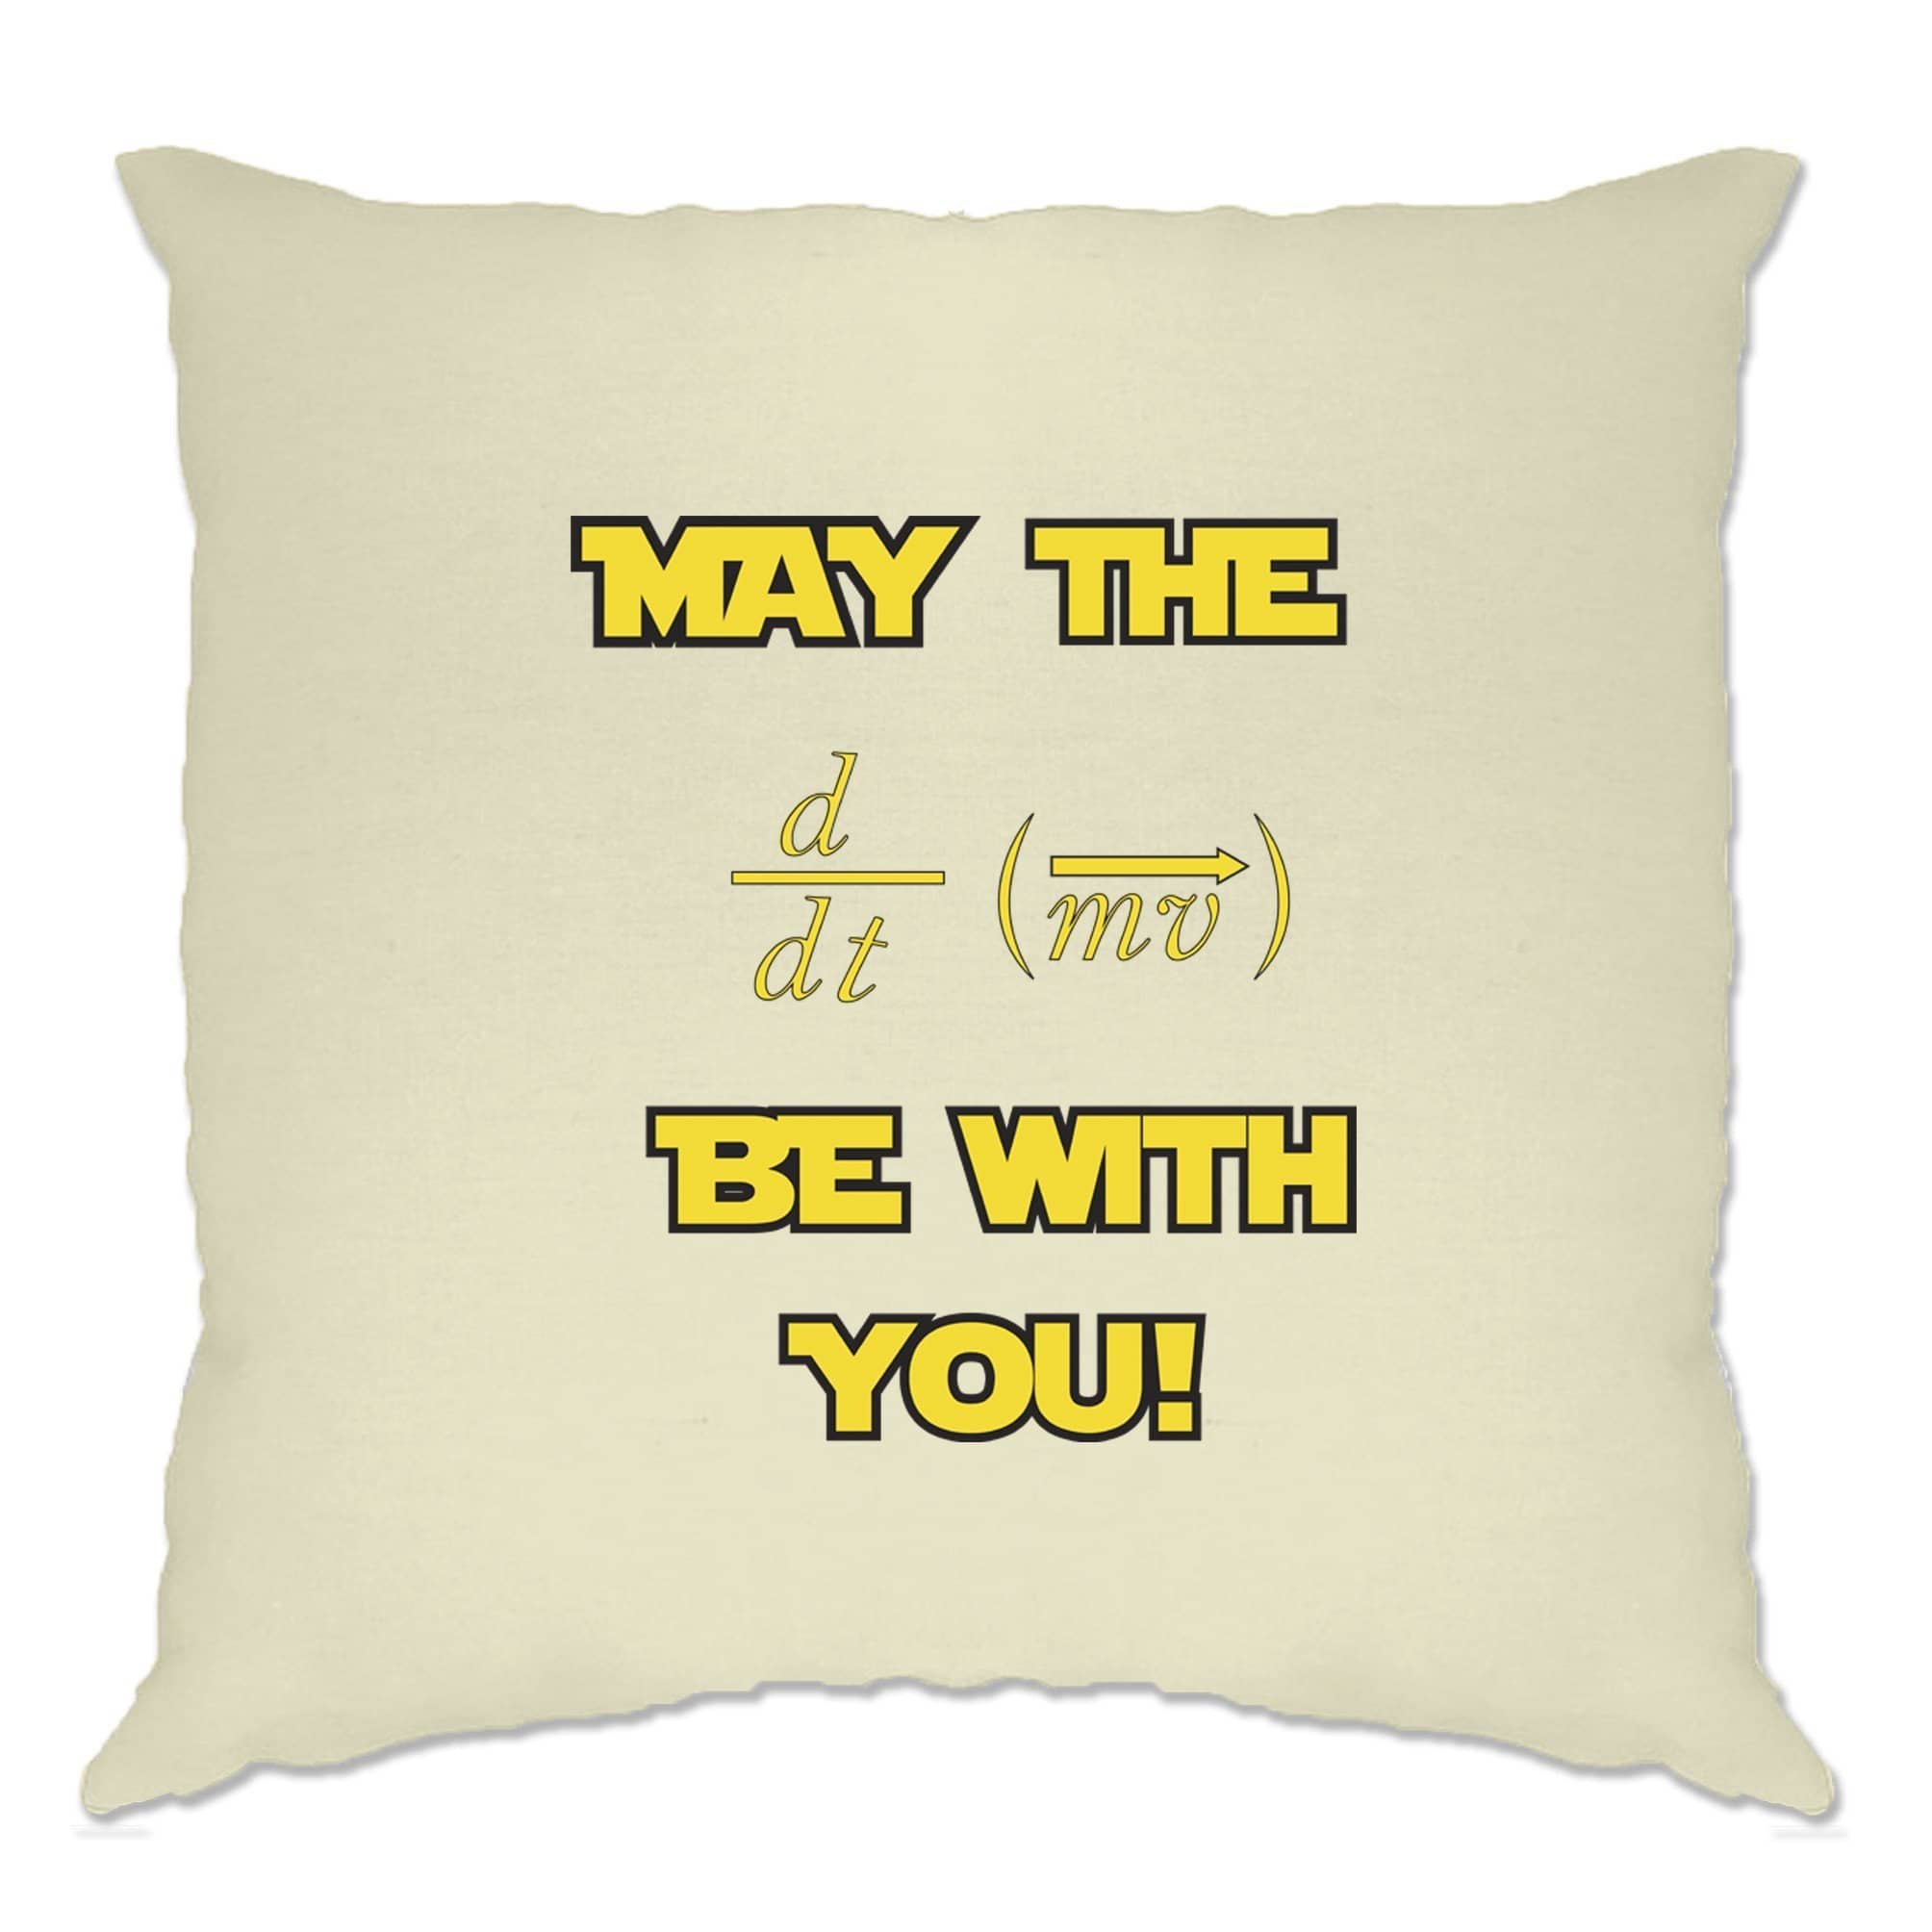 Funny Nerd Cushion Cover May The Force Be With You Pun